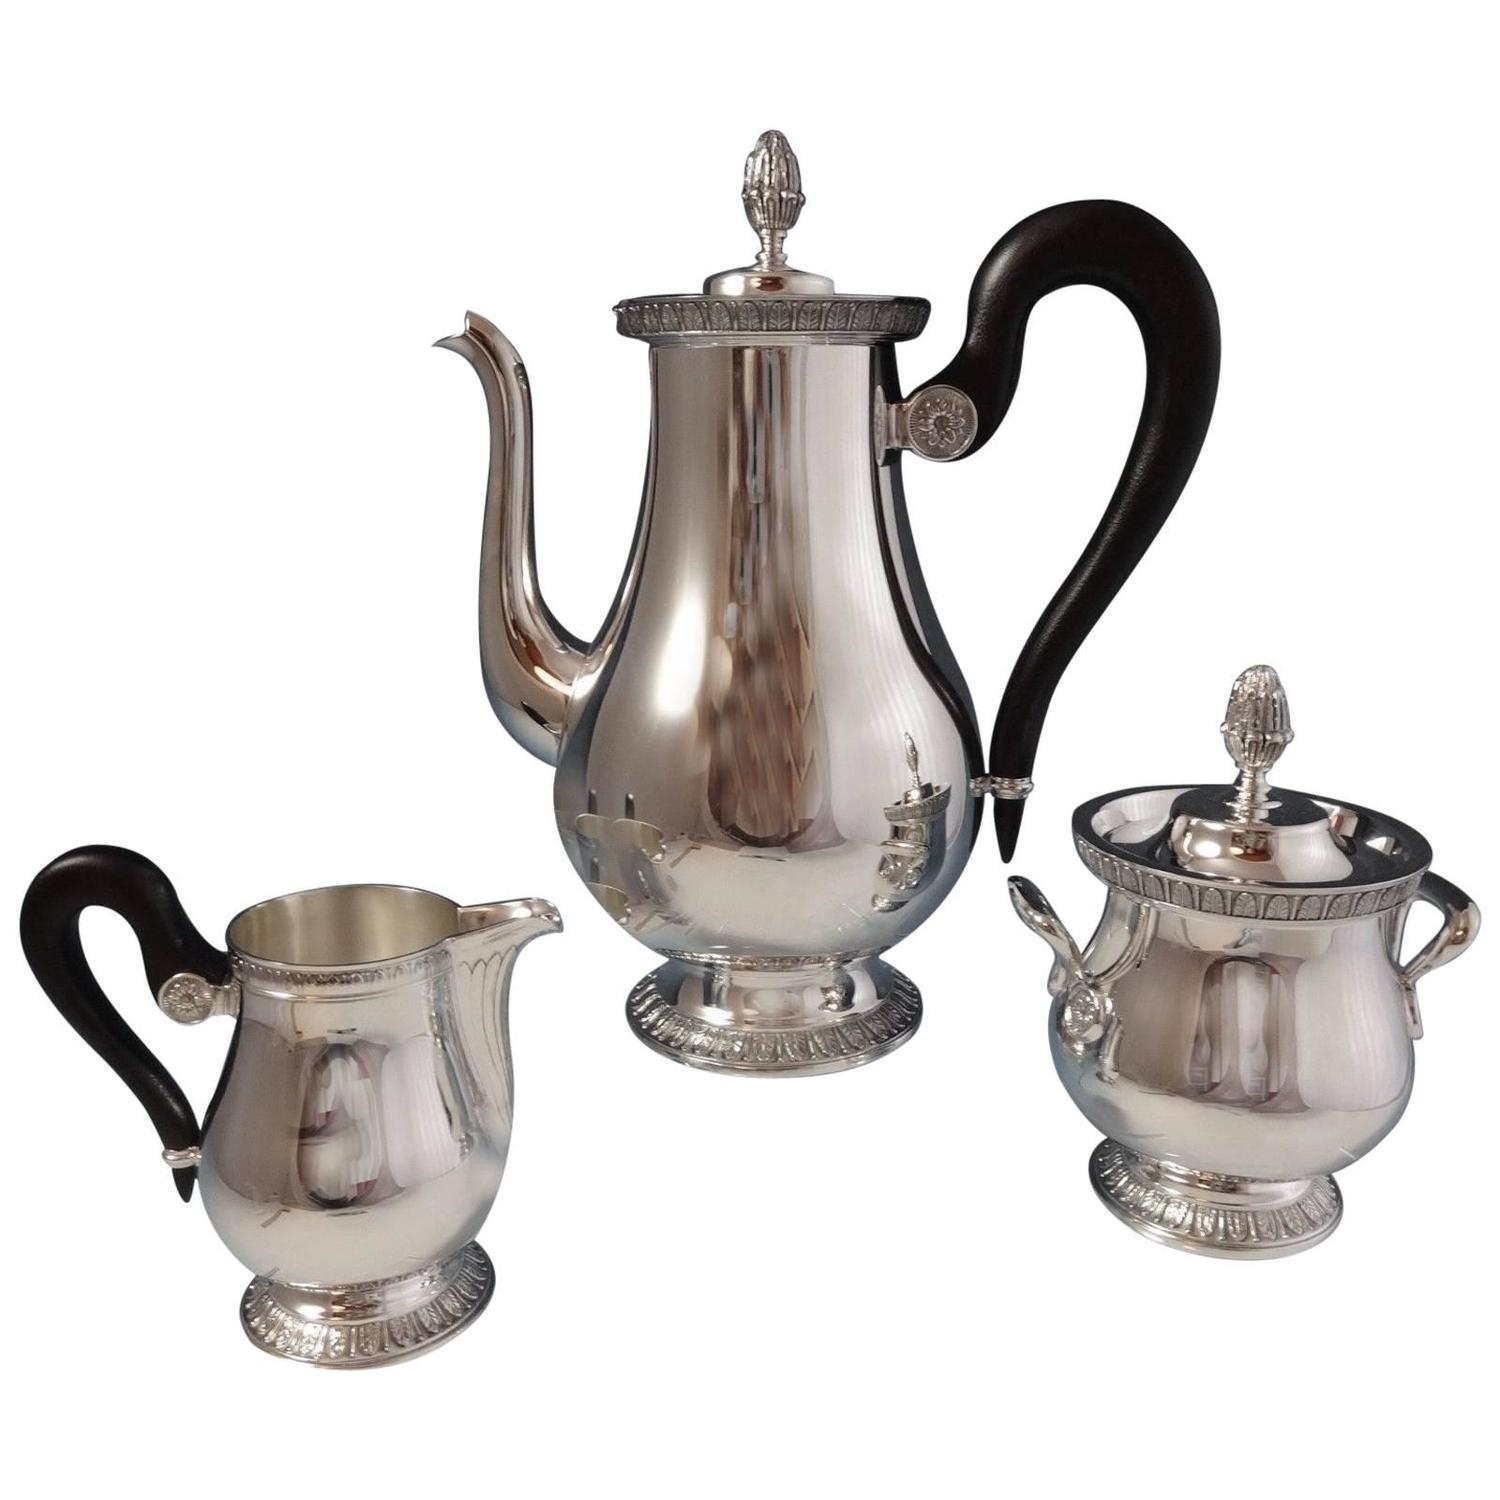 malmaison by christofle silver plate tea set of three piece at 1stdibs. Black Bedroom Furniture Sets. Home Design Ideas